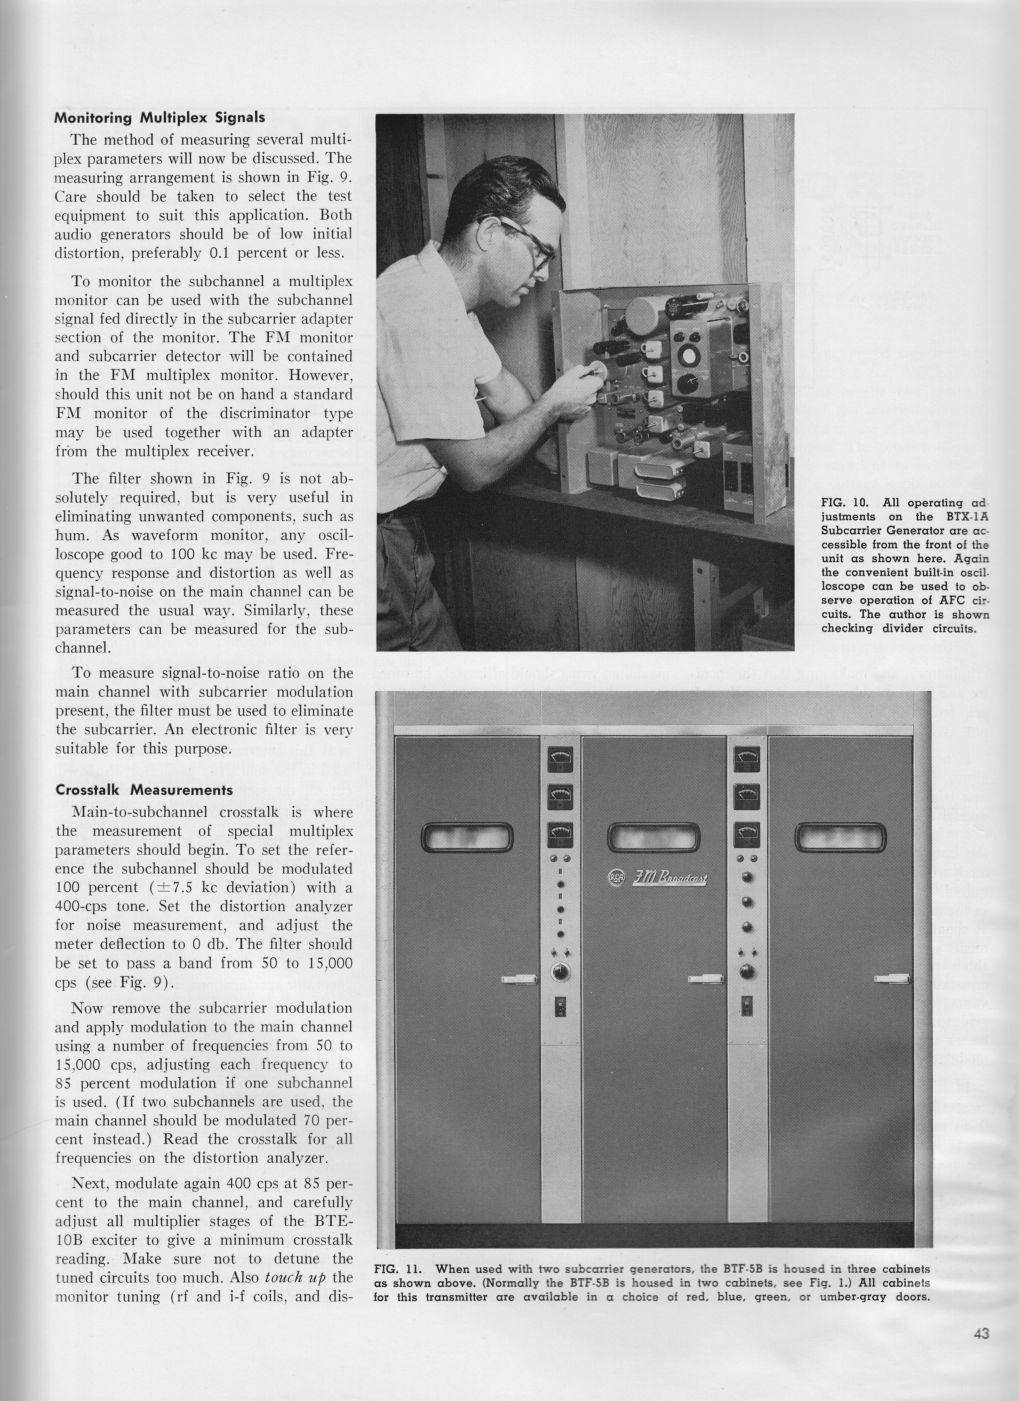 RCA BTE-10B Direct FM Exciter, page 6